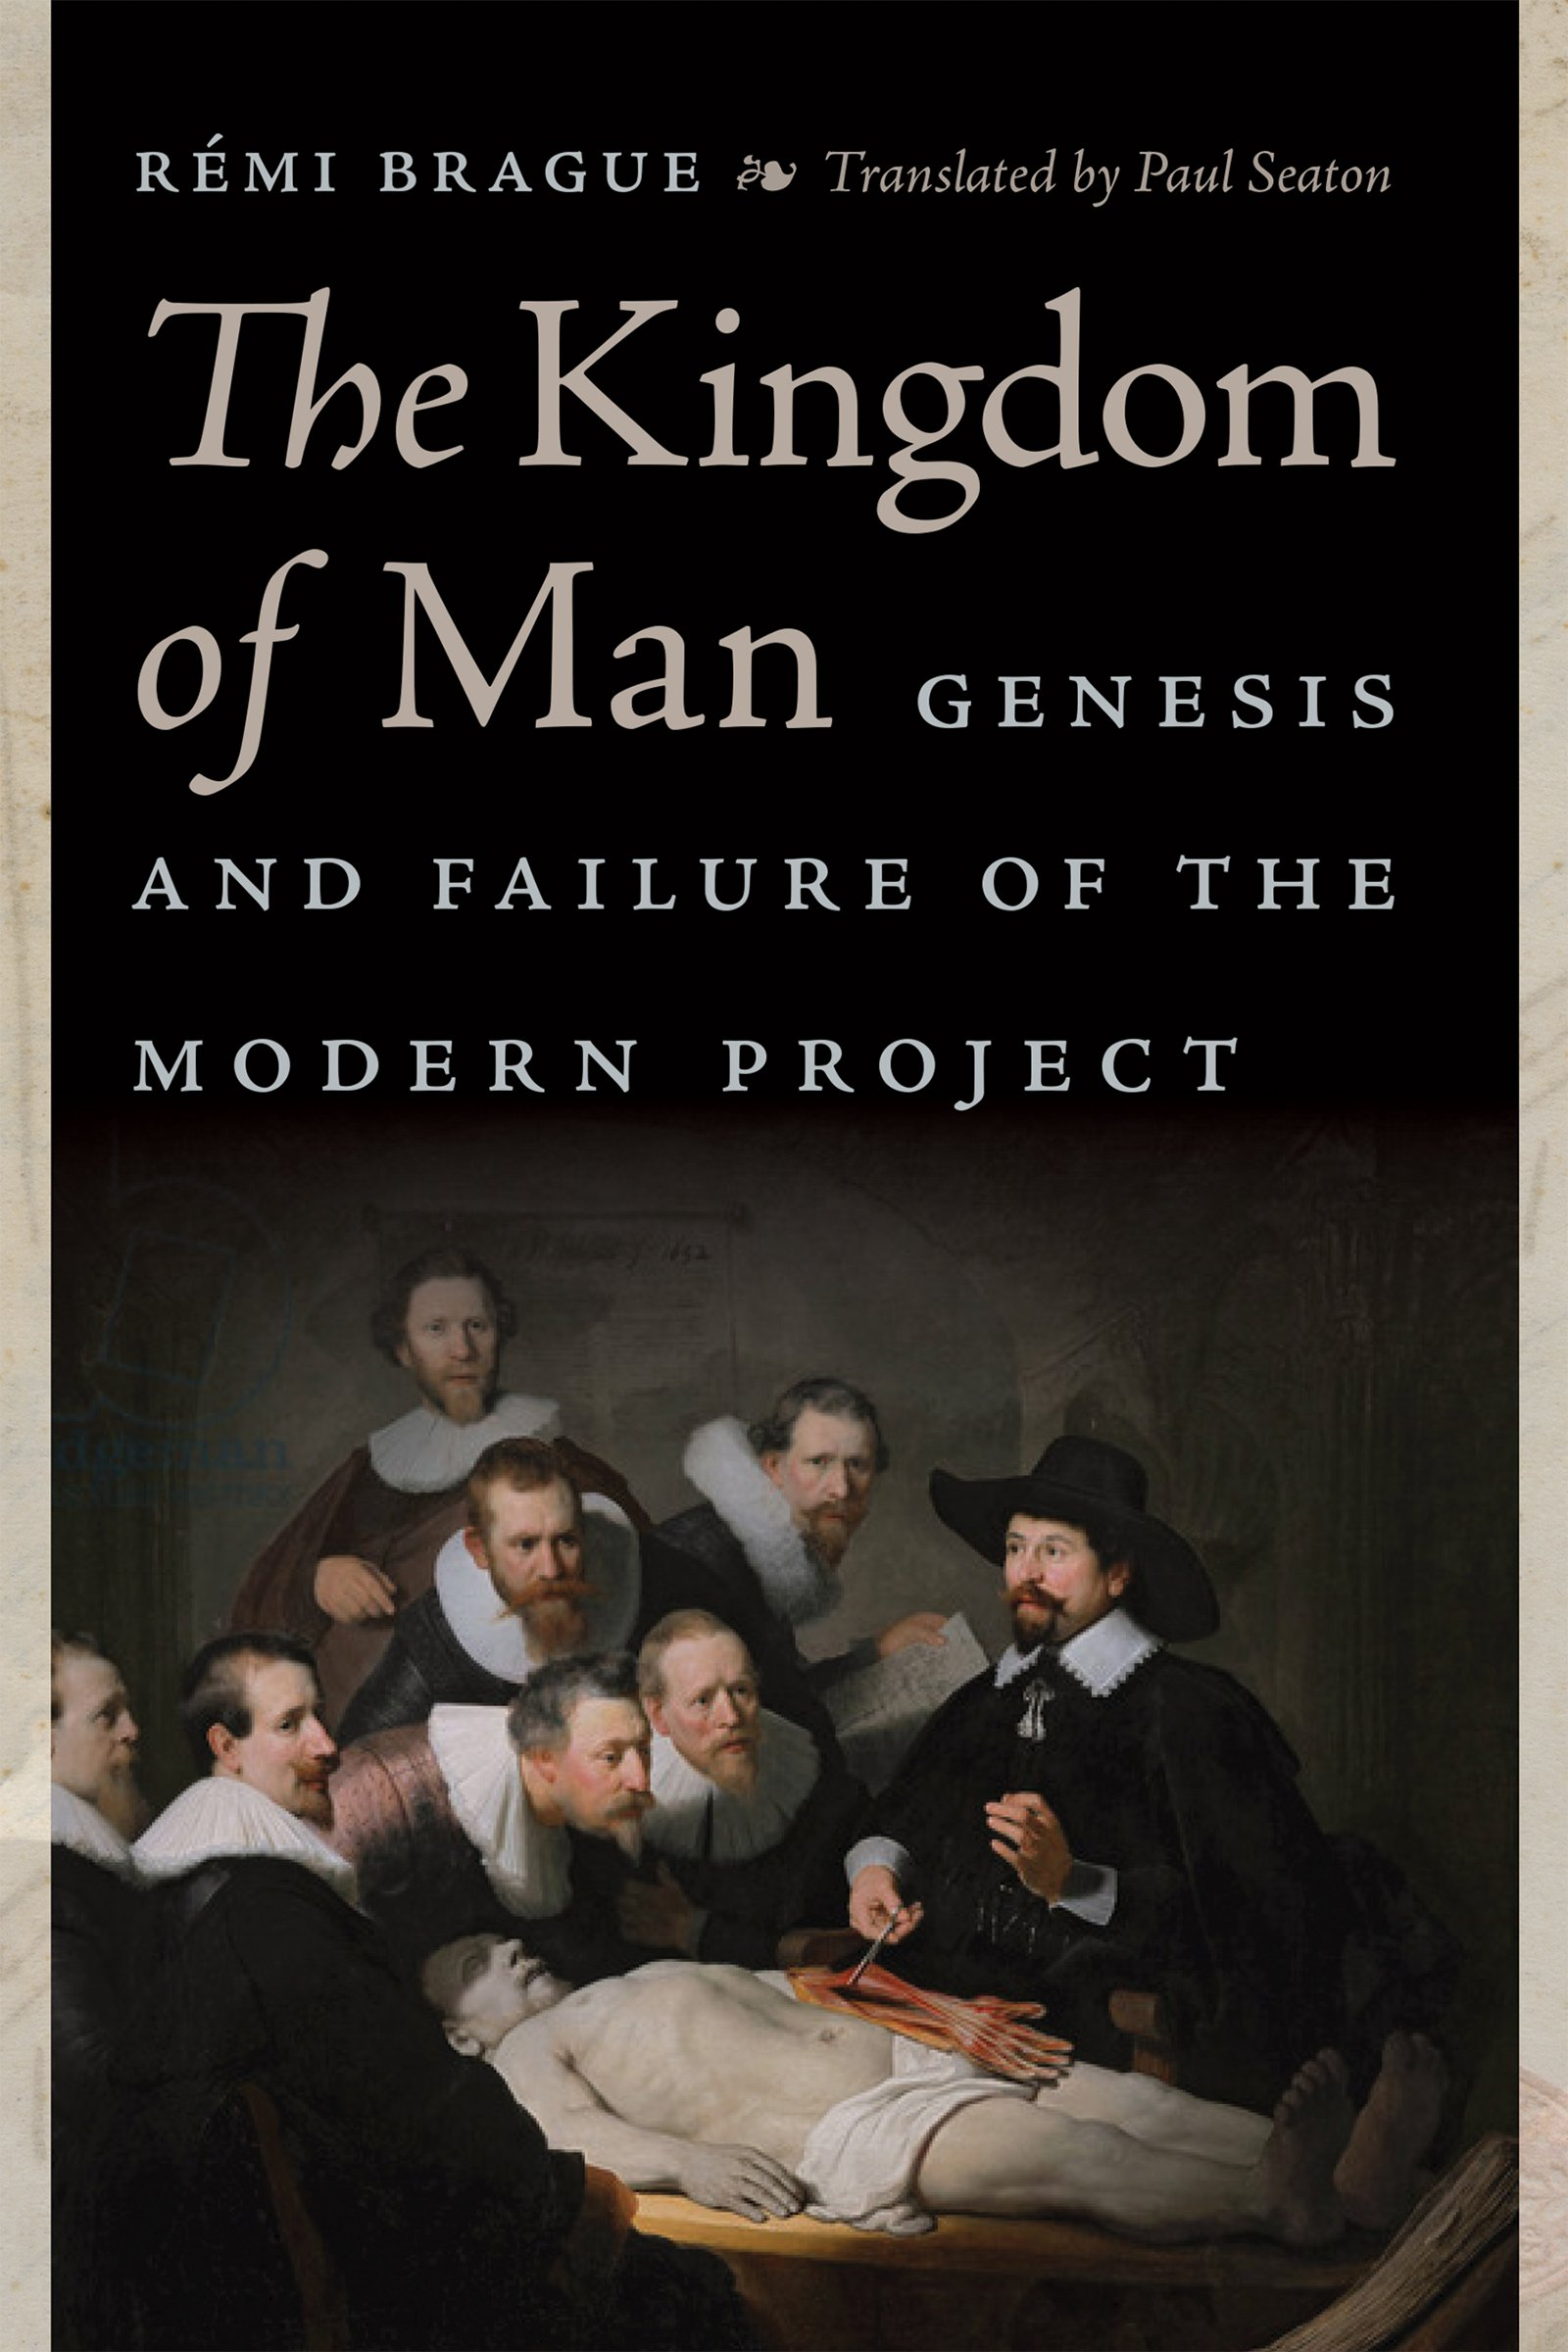 The Kingdom of Man Genesis and Failure of the Modern